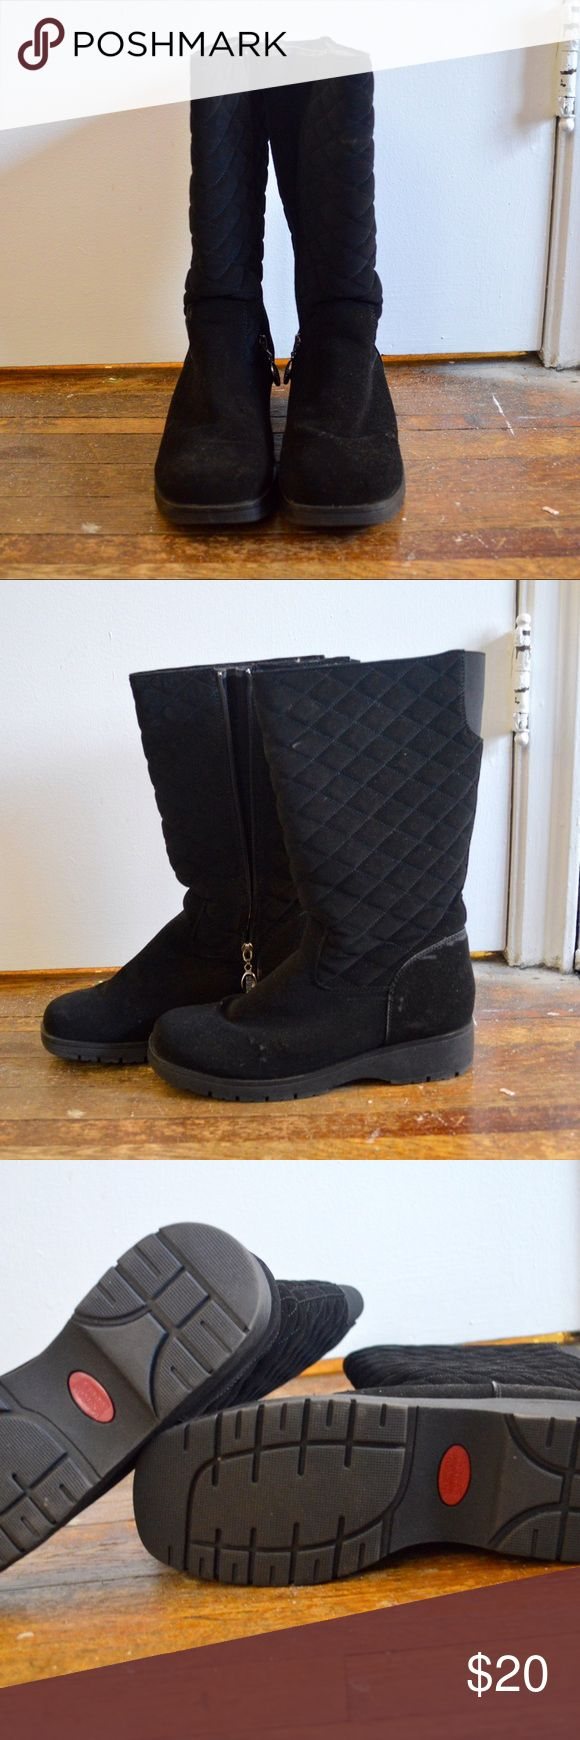 Quilted-Patterned Boots Quilted-patterned boots Black fuzzy boots with a quilted pattern on them & zippered closure Size 10 NWOT Boston Accent Shoes Winter & Rain Boots